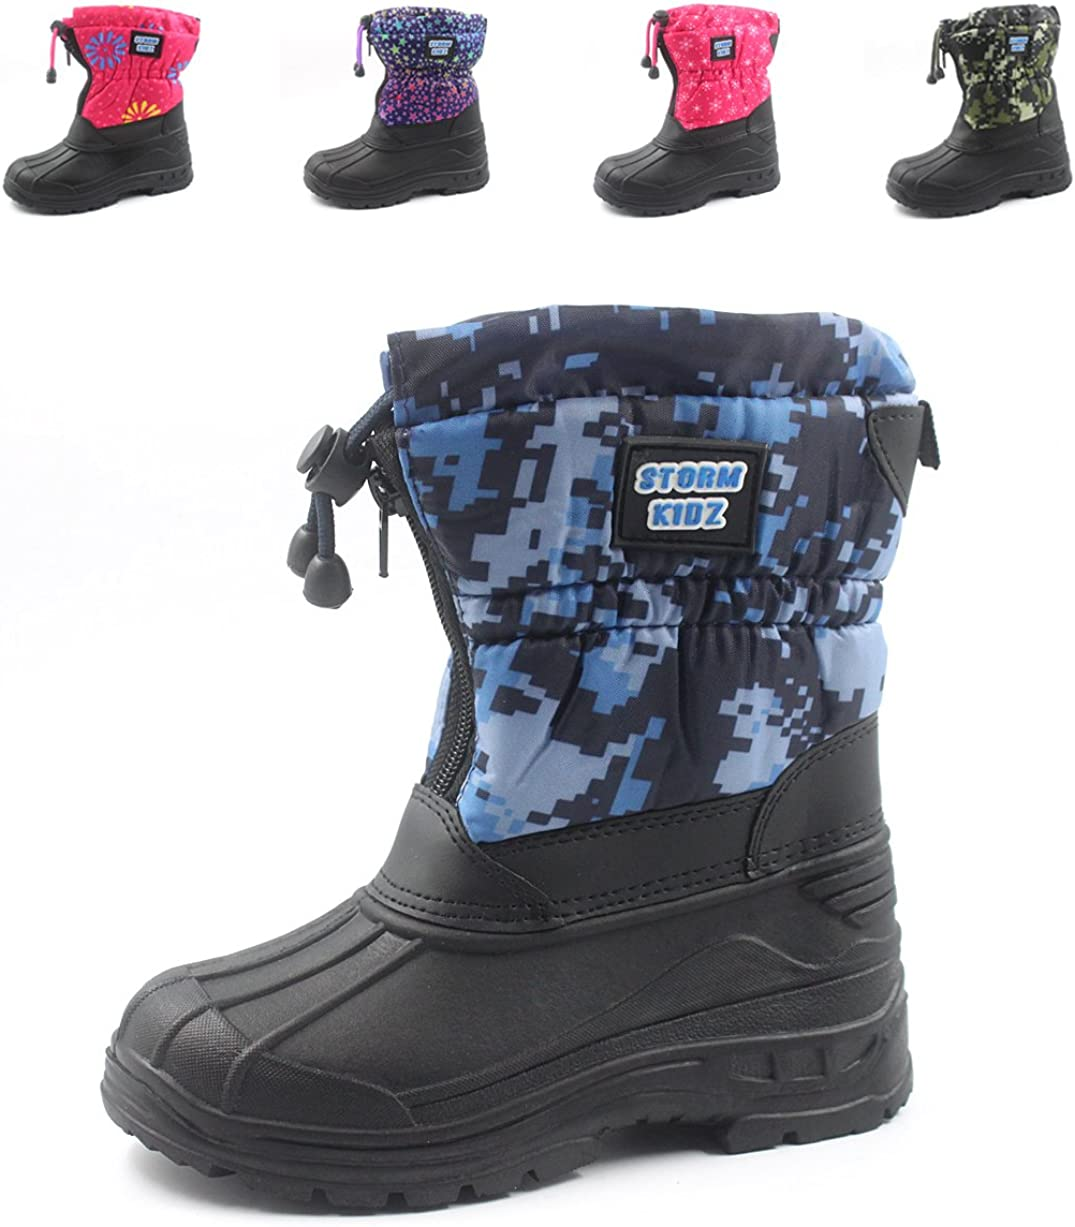 Storm Kidz Unisex Cold Weather Snow Boot Many Colors Toddler//Little Kid//Big Kid